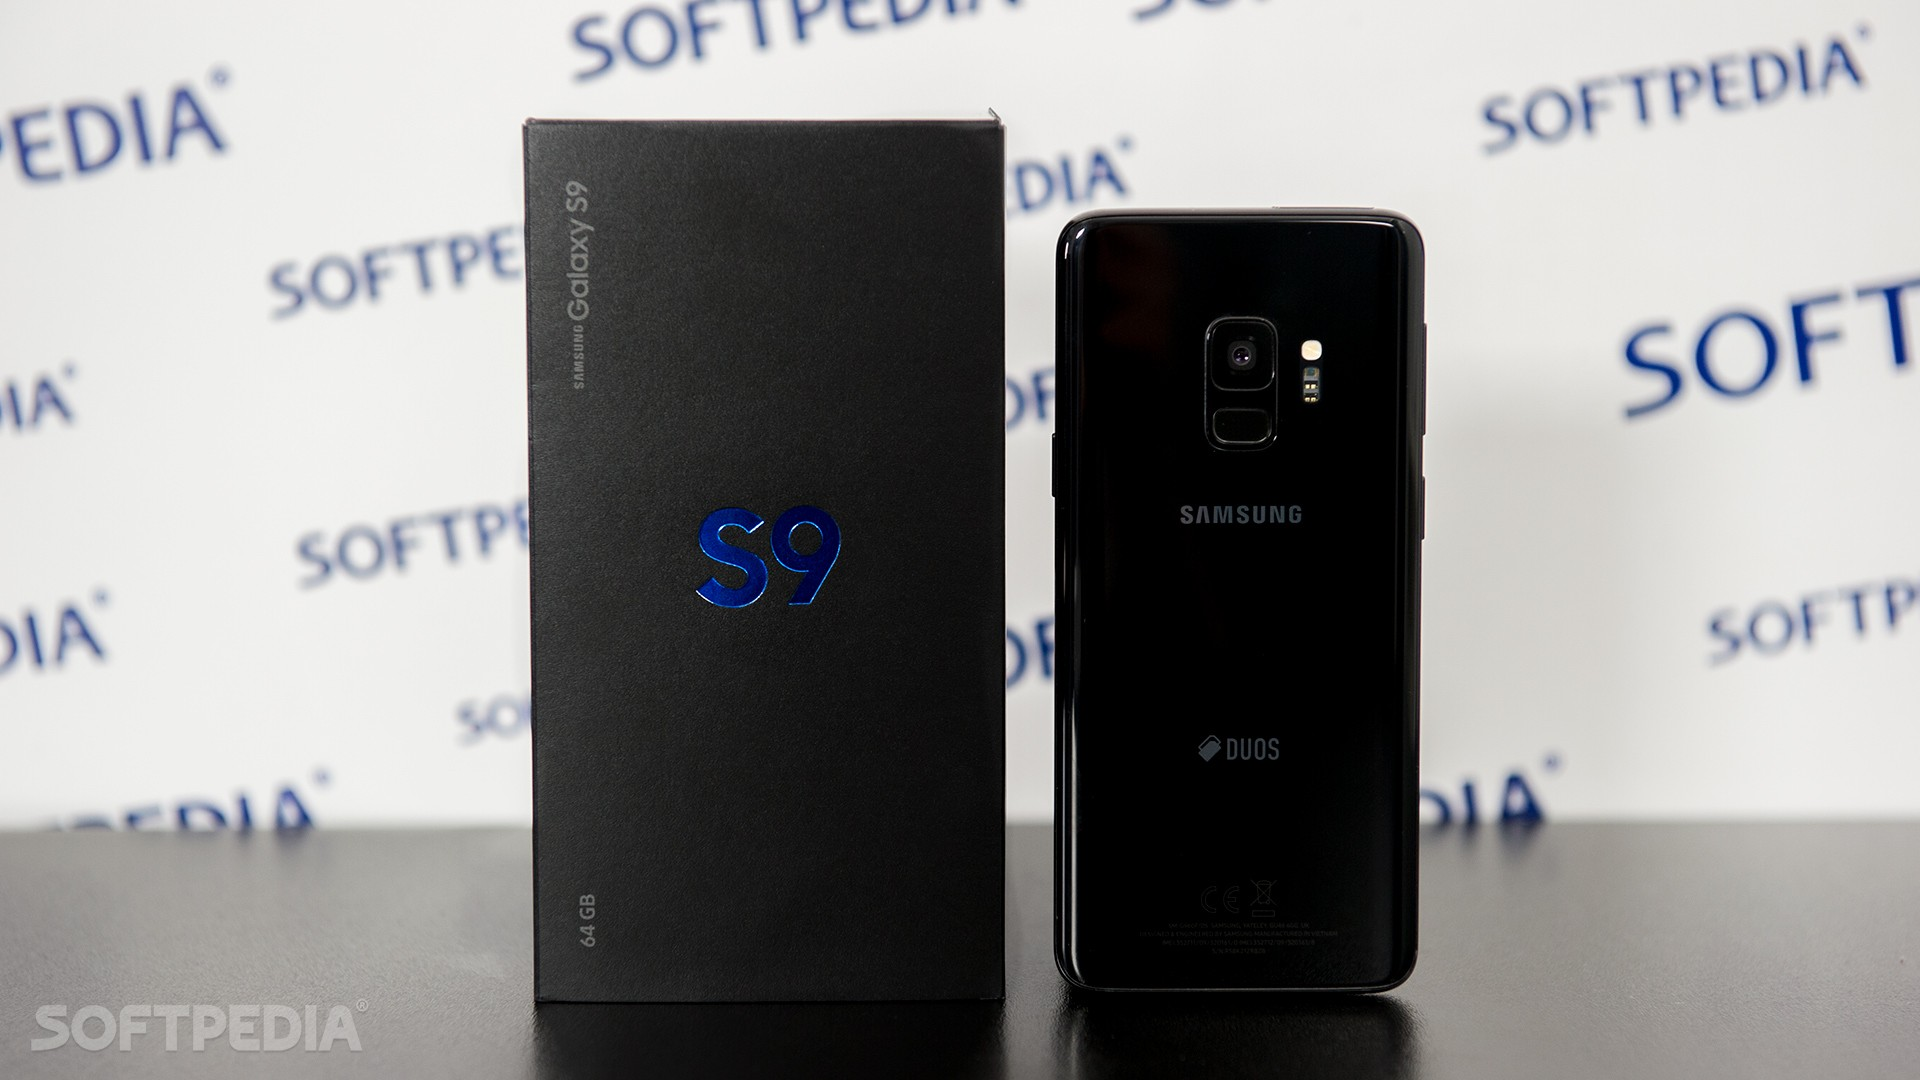 Samsung Galaxy S10 Launching February 20?